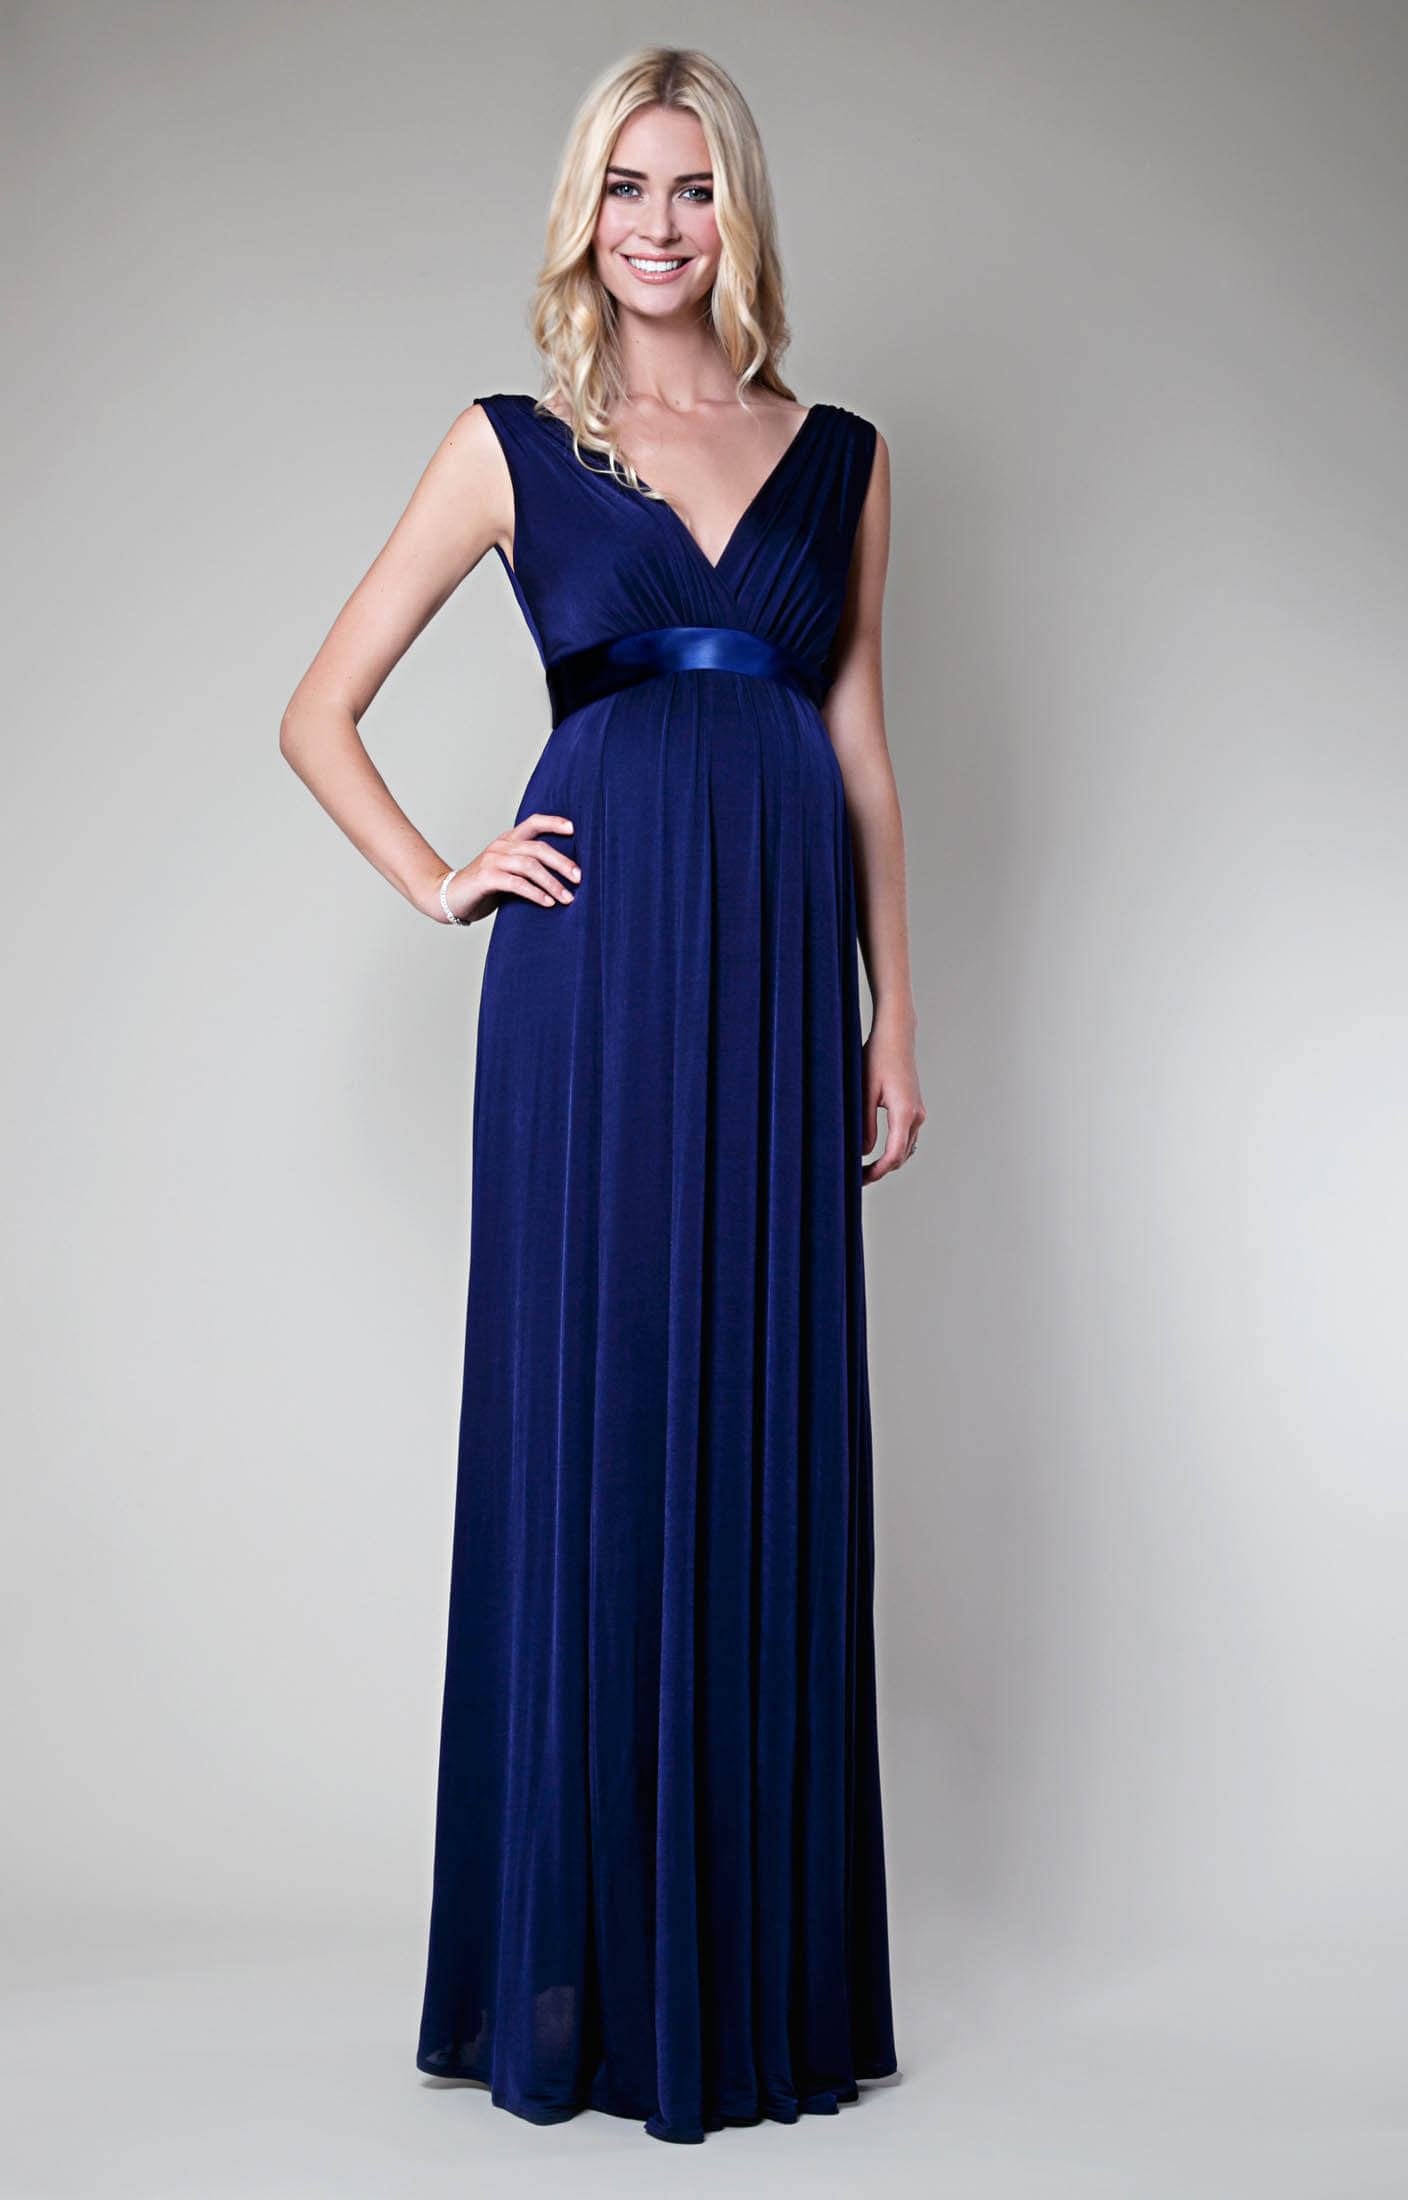 Anastasia Maternity Gown Eclipse Blue - Maternity Wedding Dresses ...